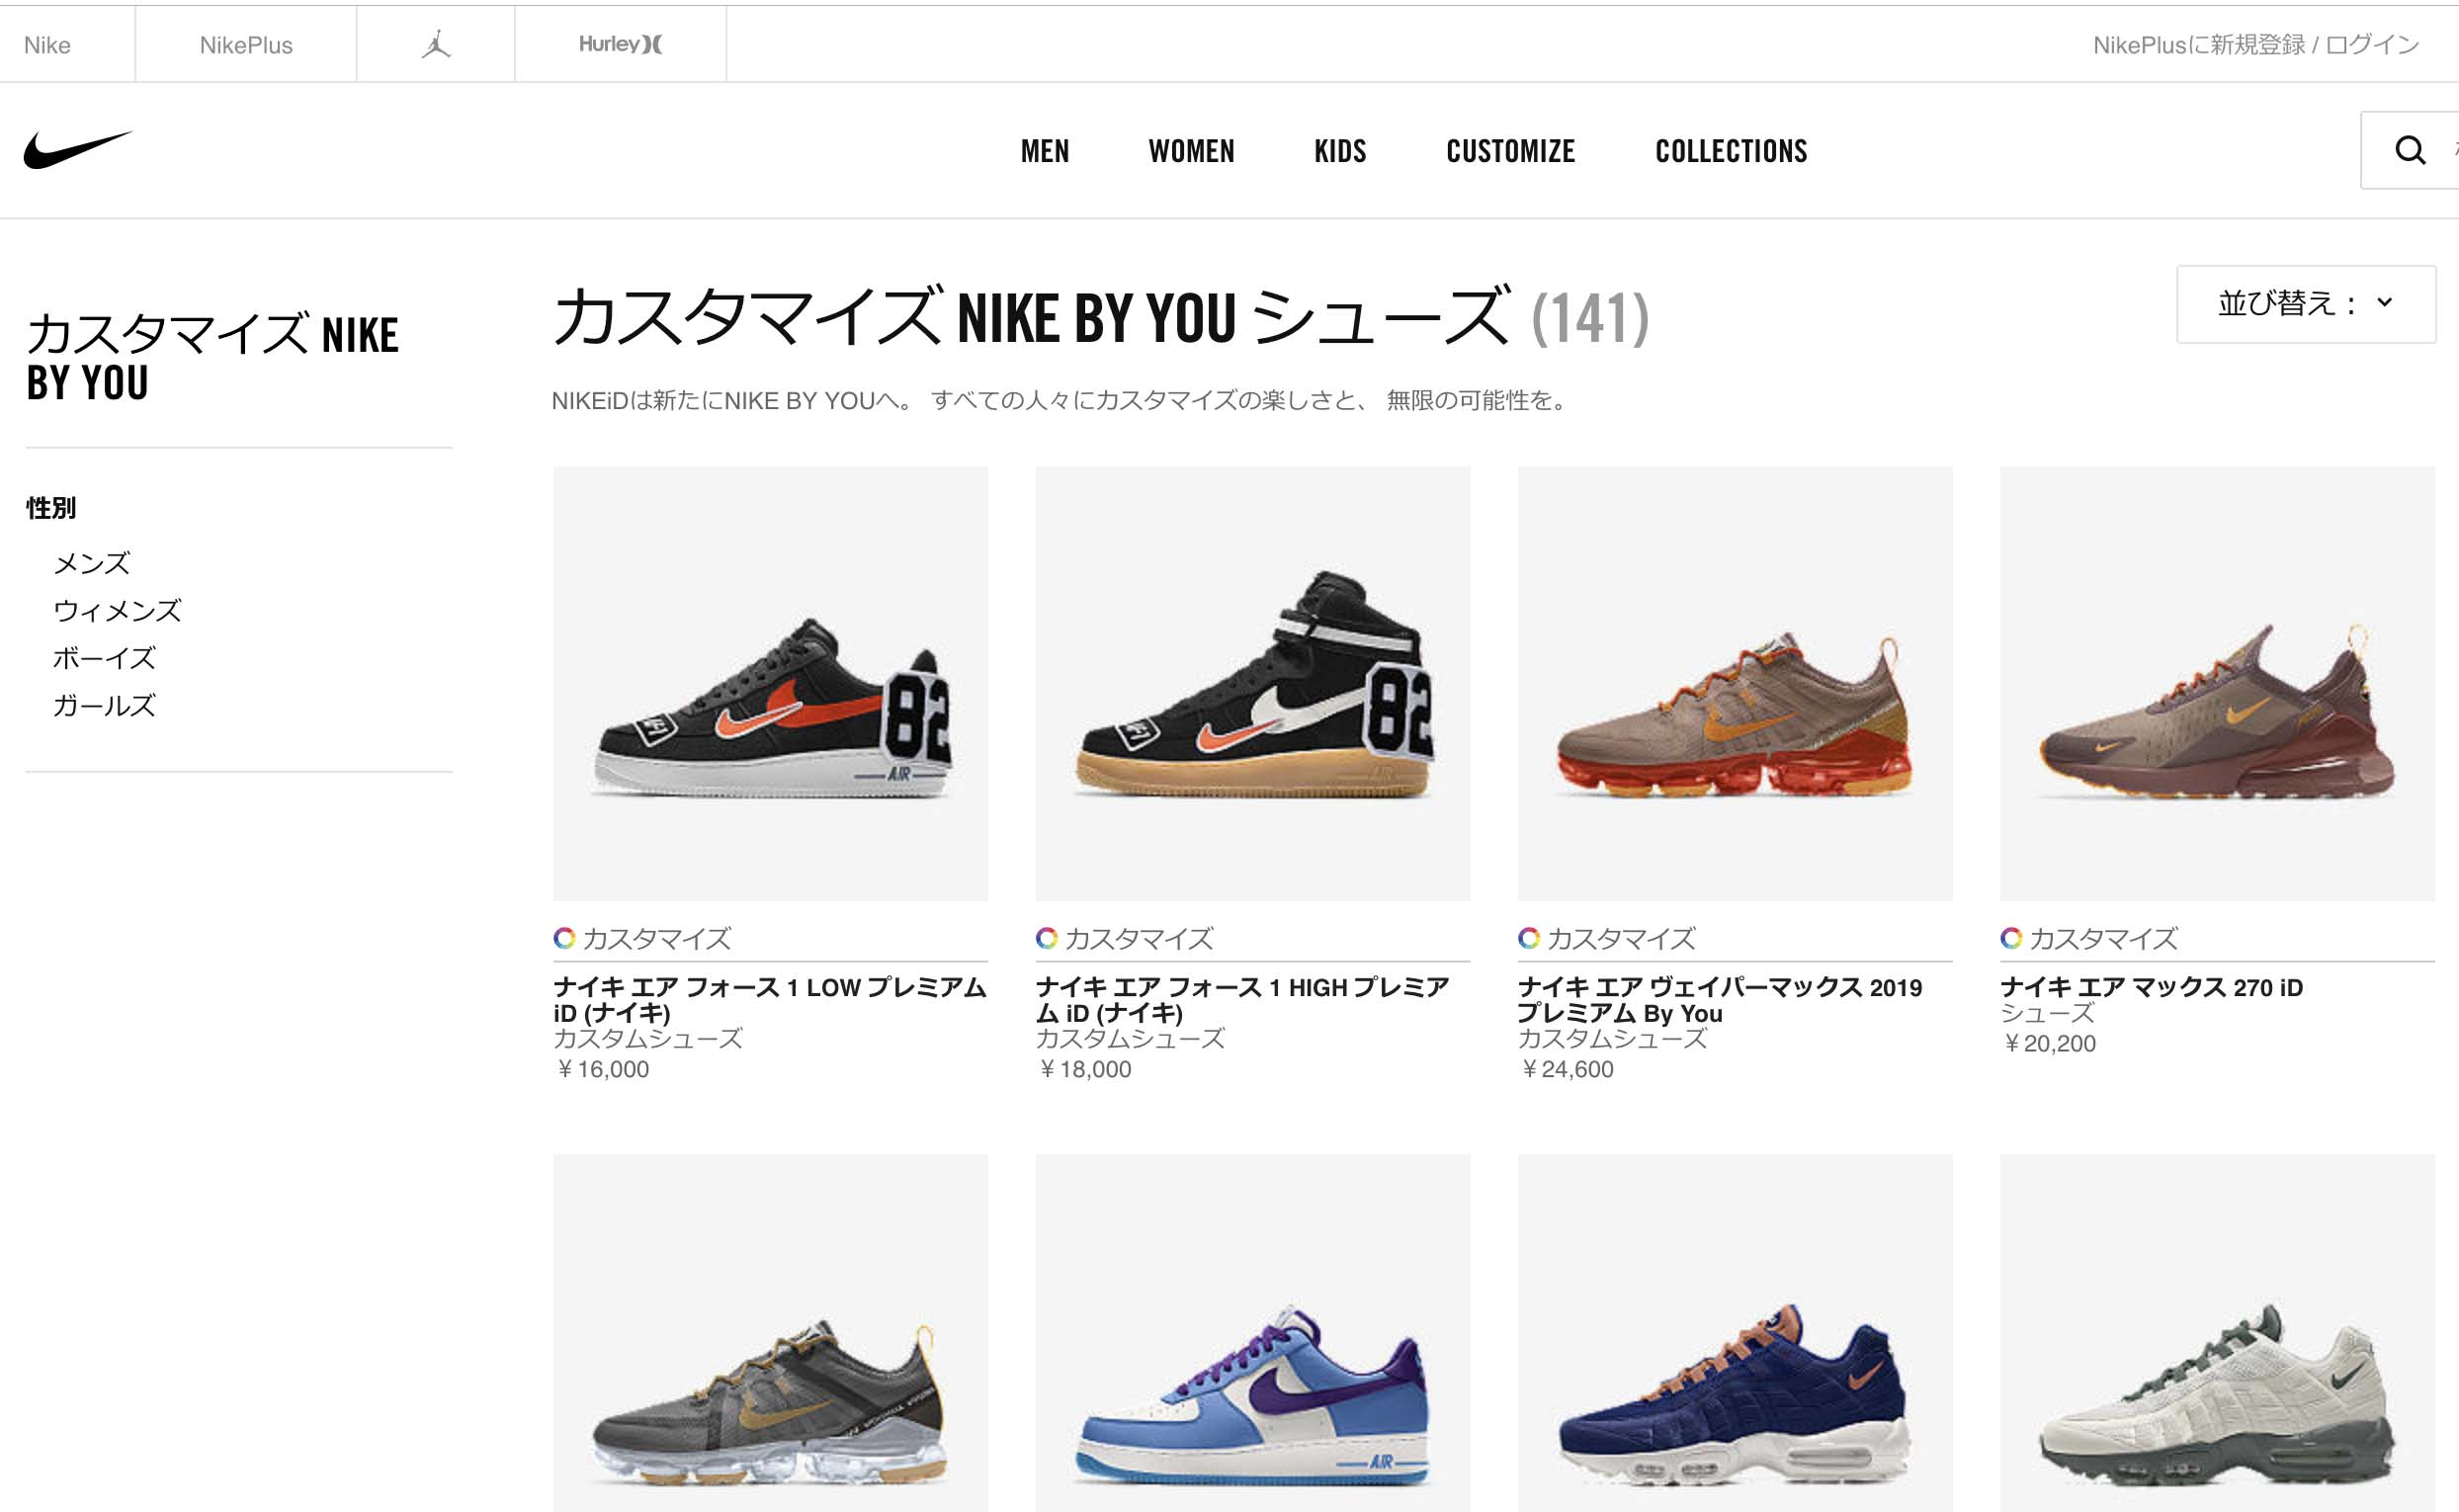 NIKE BY YOU カスタマイズシューズ画面